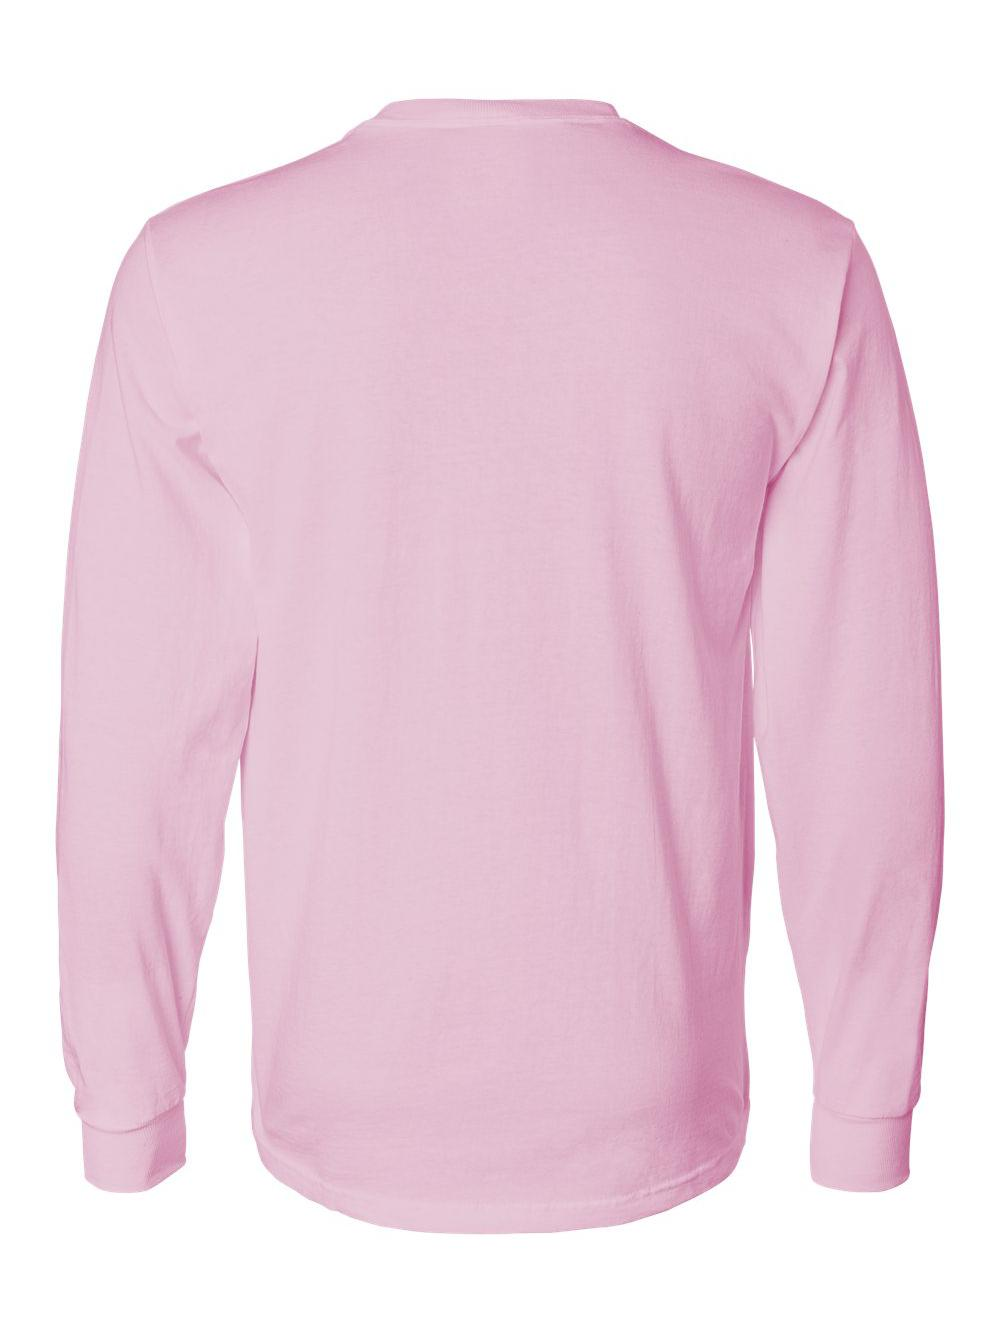 Fruit-of-the-Loom-HD-Cotton-Long-Sleeve-T-Shirt-4930R thumbnail 25